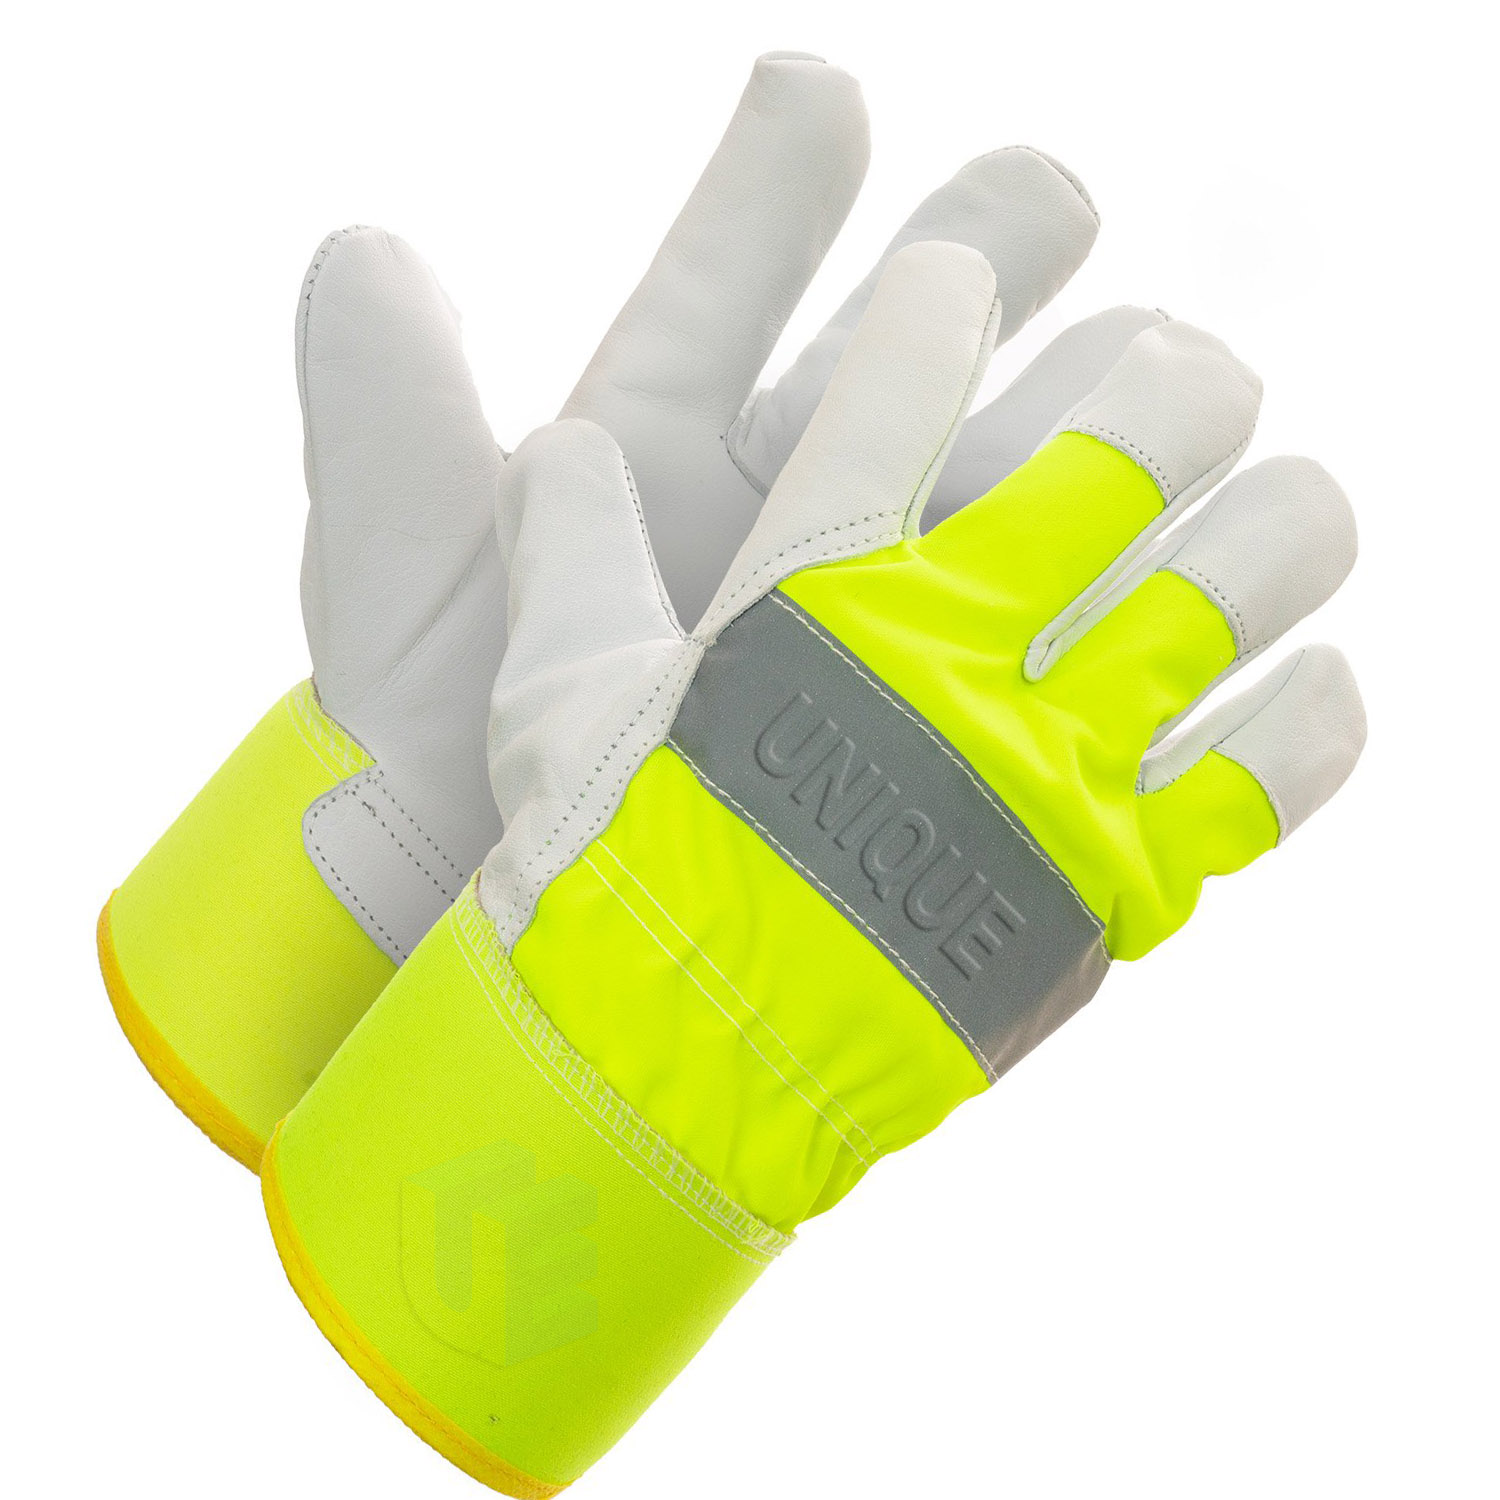 Cow Split Leather Palm Gloves With Hi-Viz Fabric and Rubberized Safety Cuff.